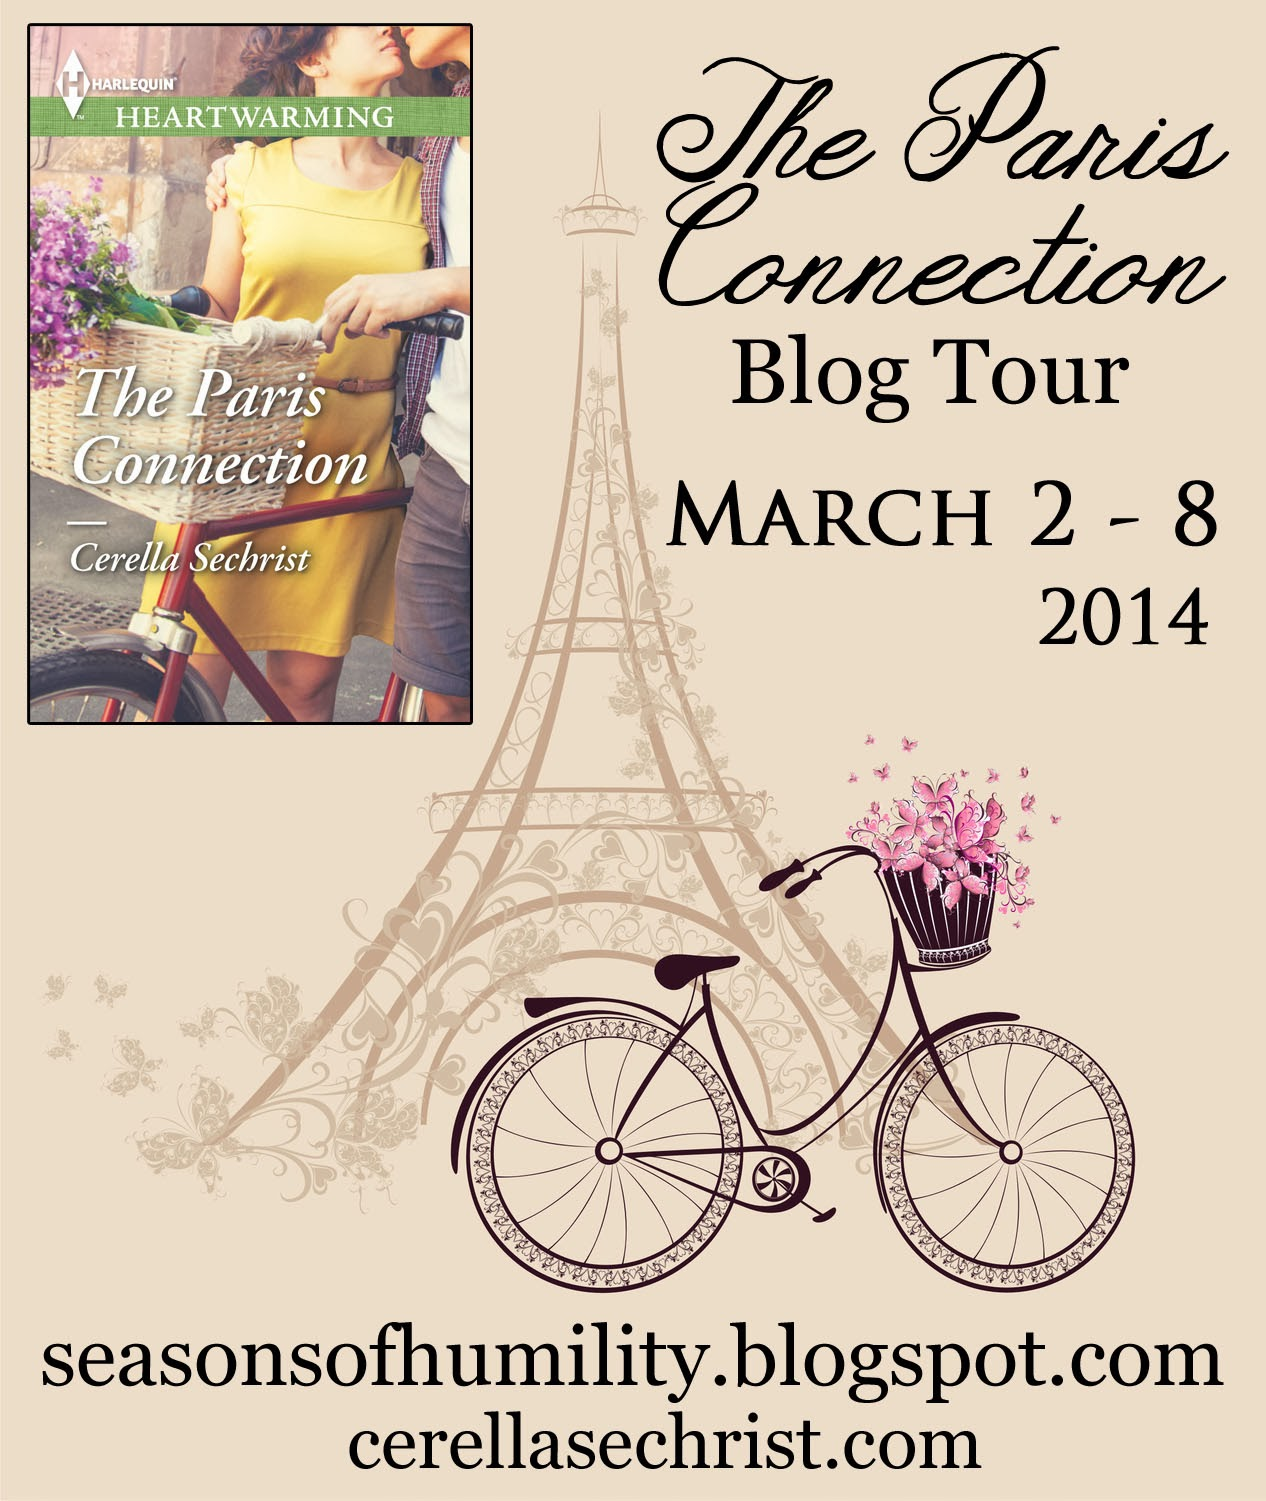 http://seasonsofhumility.blogspot.com/search/label/The%20Paris%20Connection%20Blog%20Tour